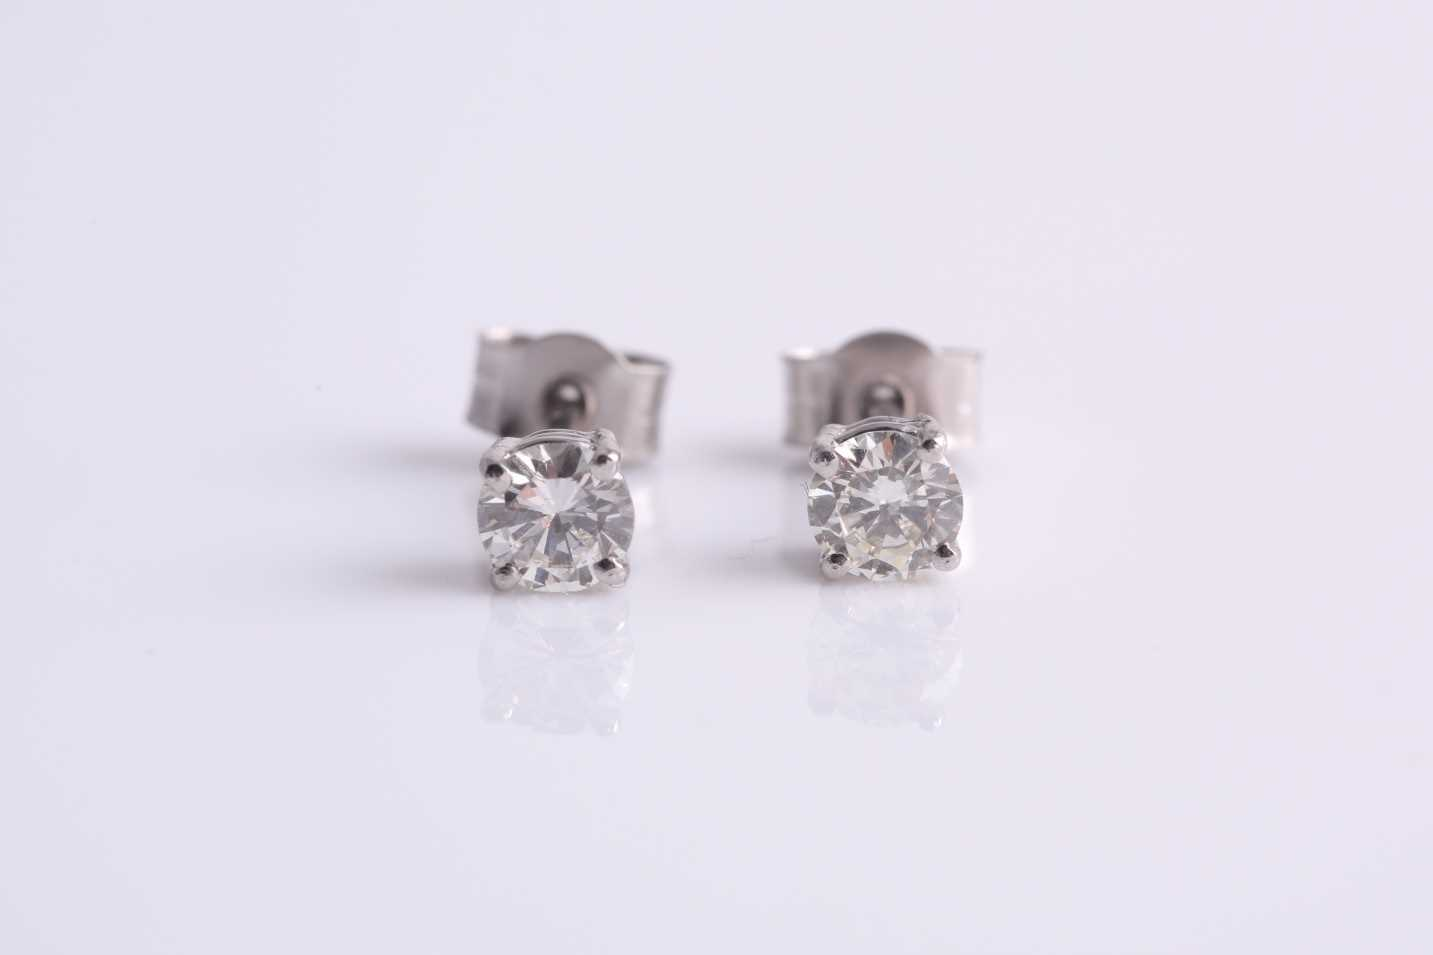 A pair of platinum and diamond ear studs, the round brilliant-cut diamonds of approximately 0.45